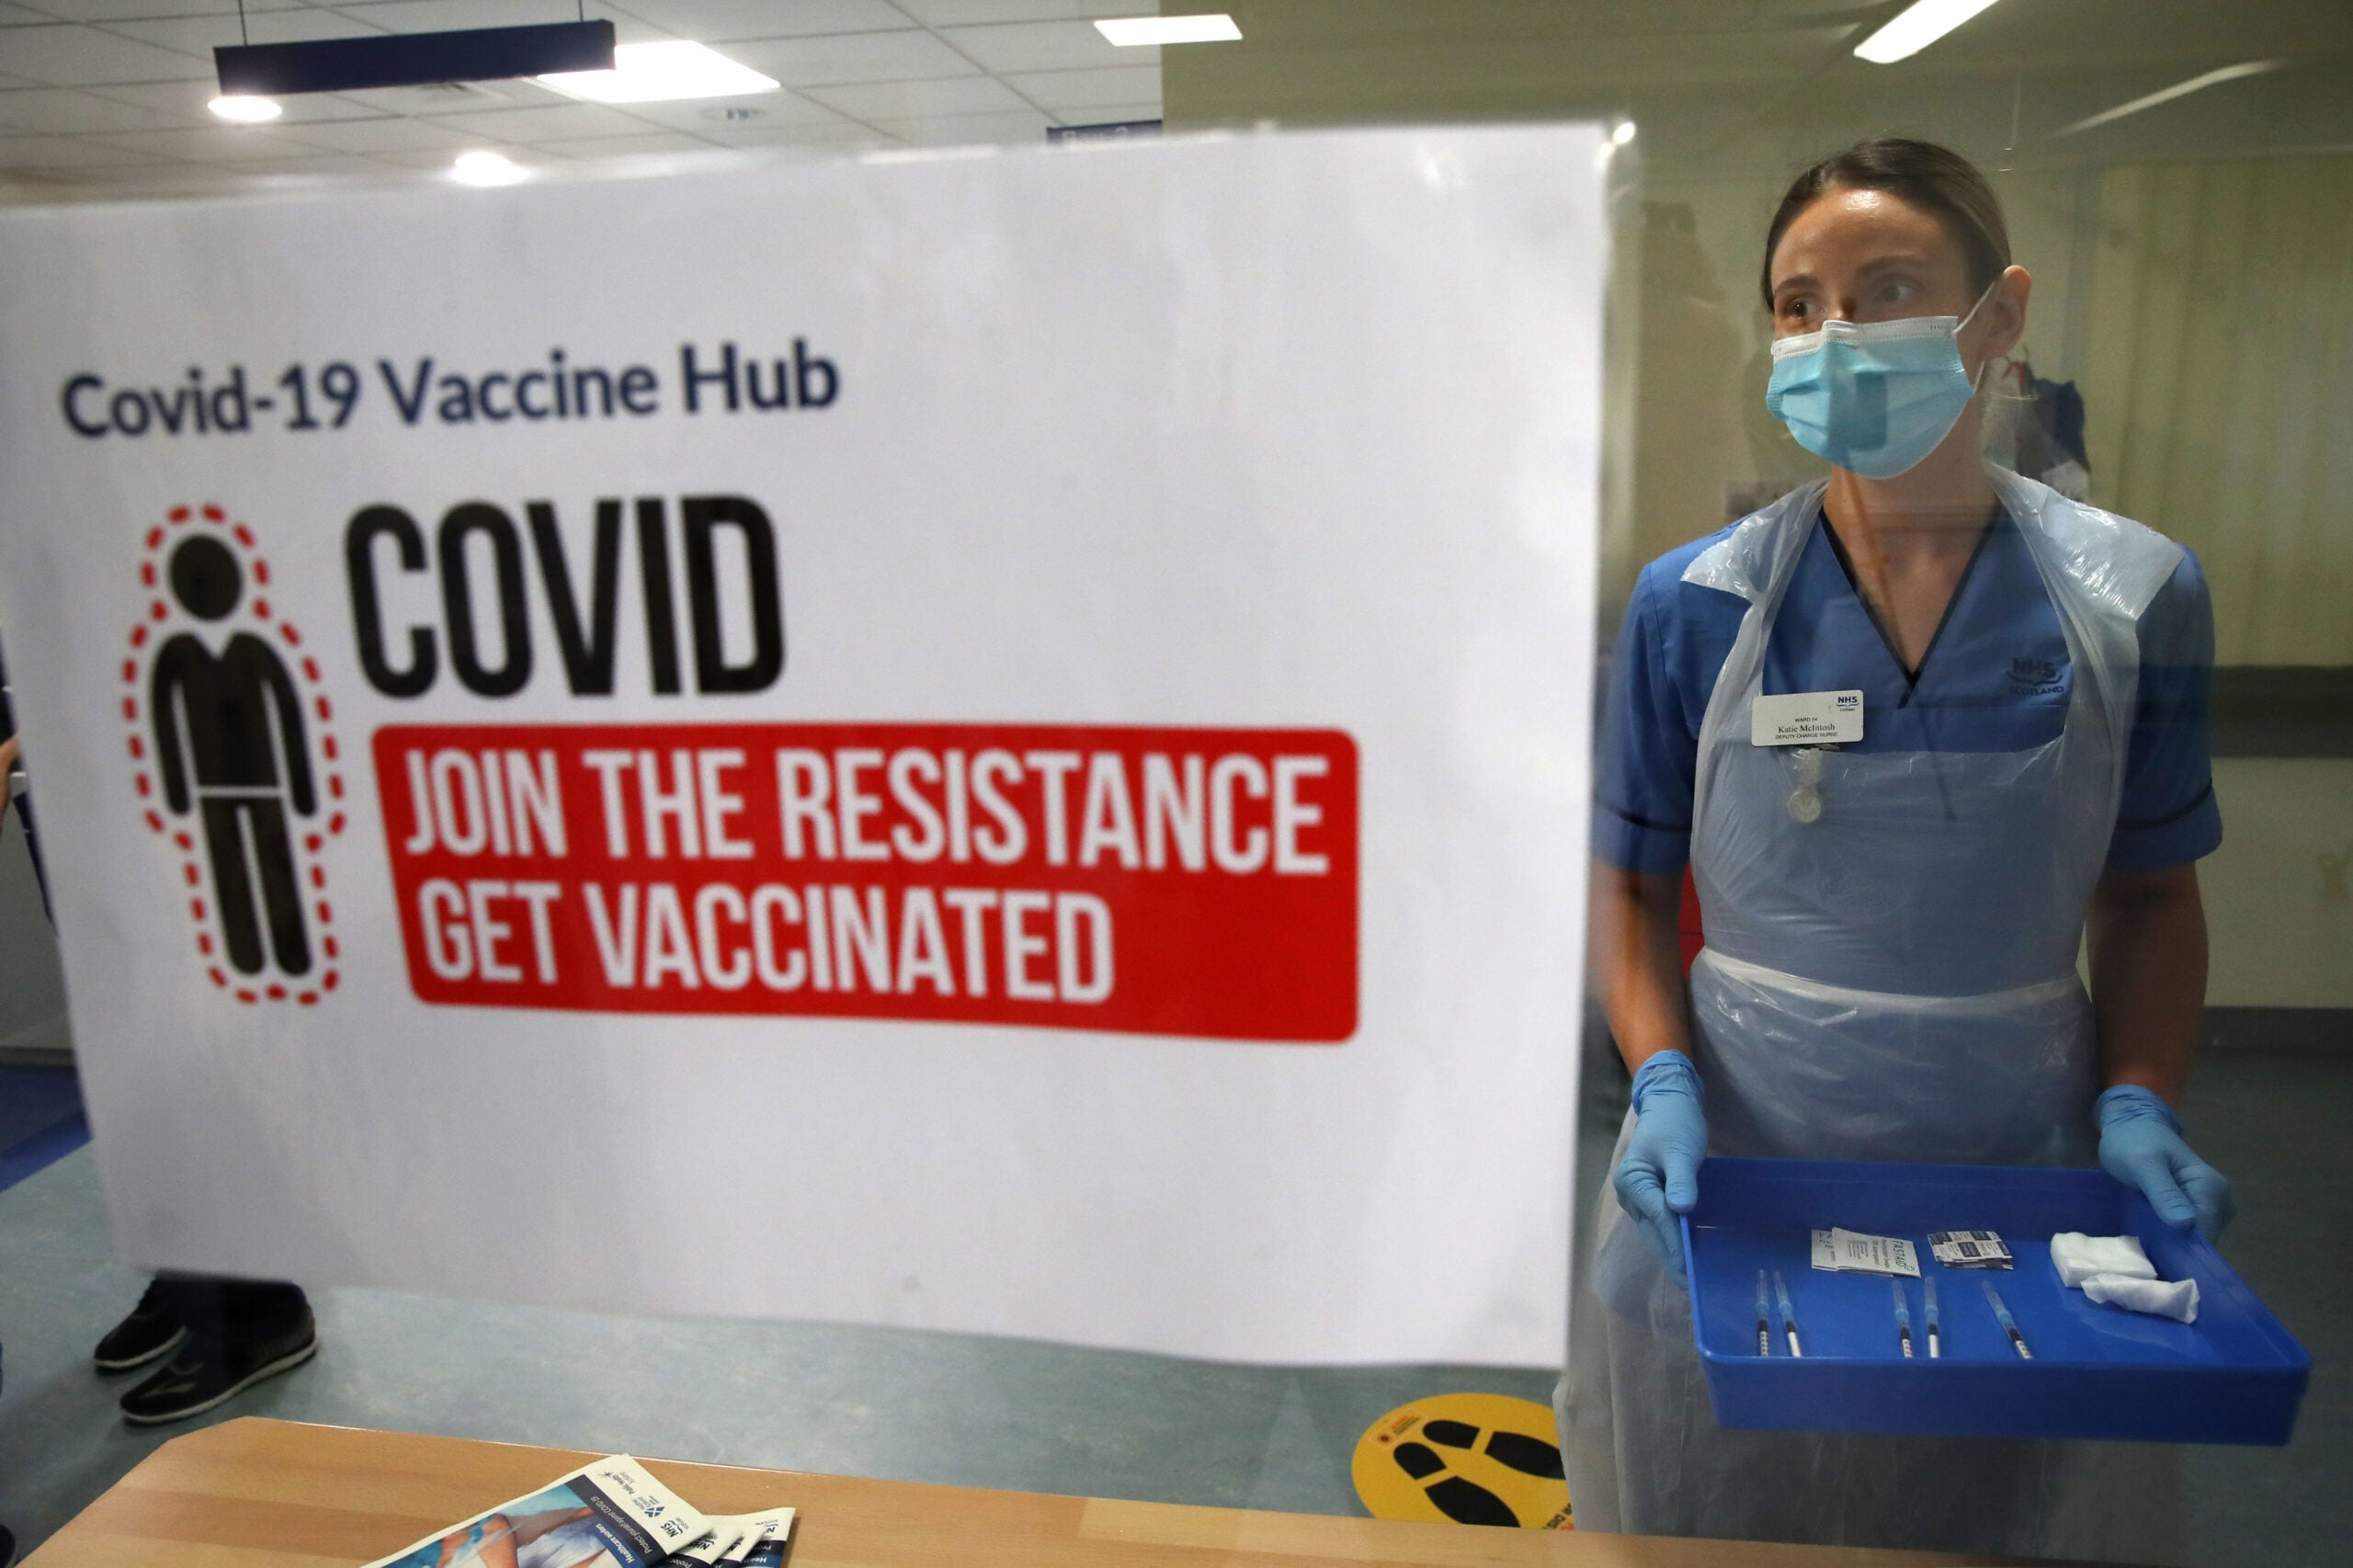 How Covid-19 vaccines have dramatically reduced deaths